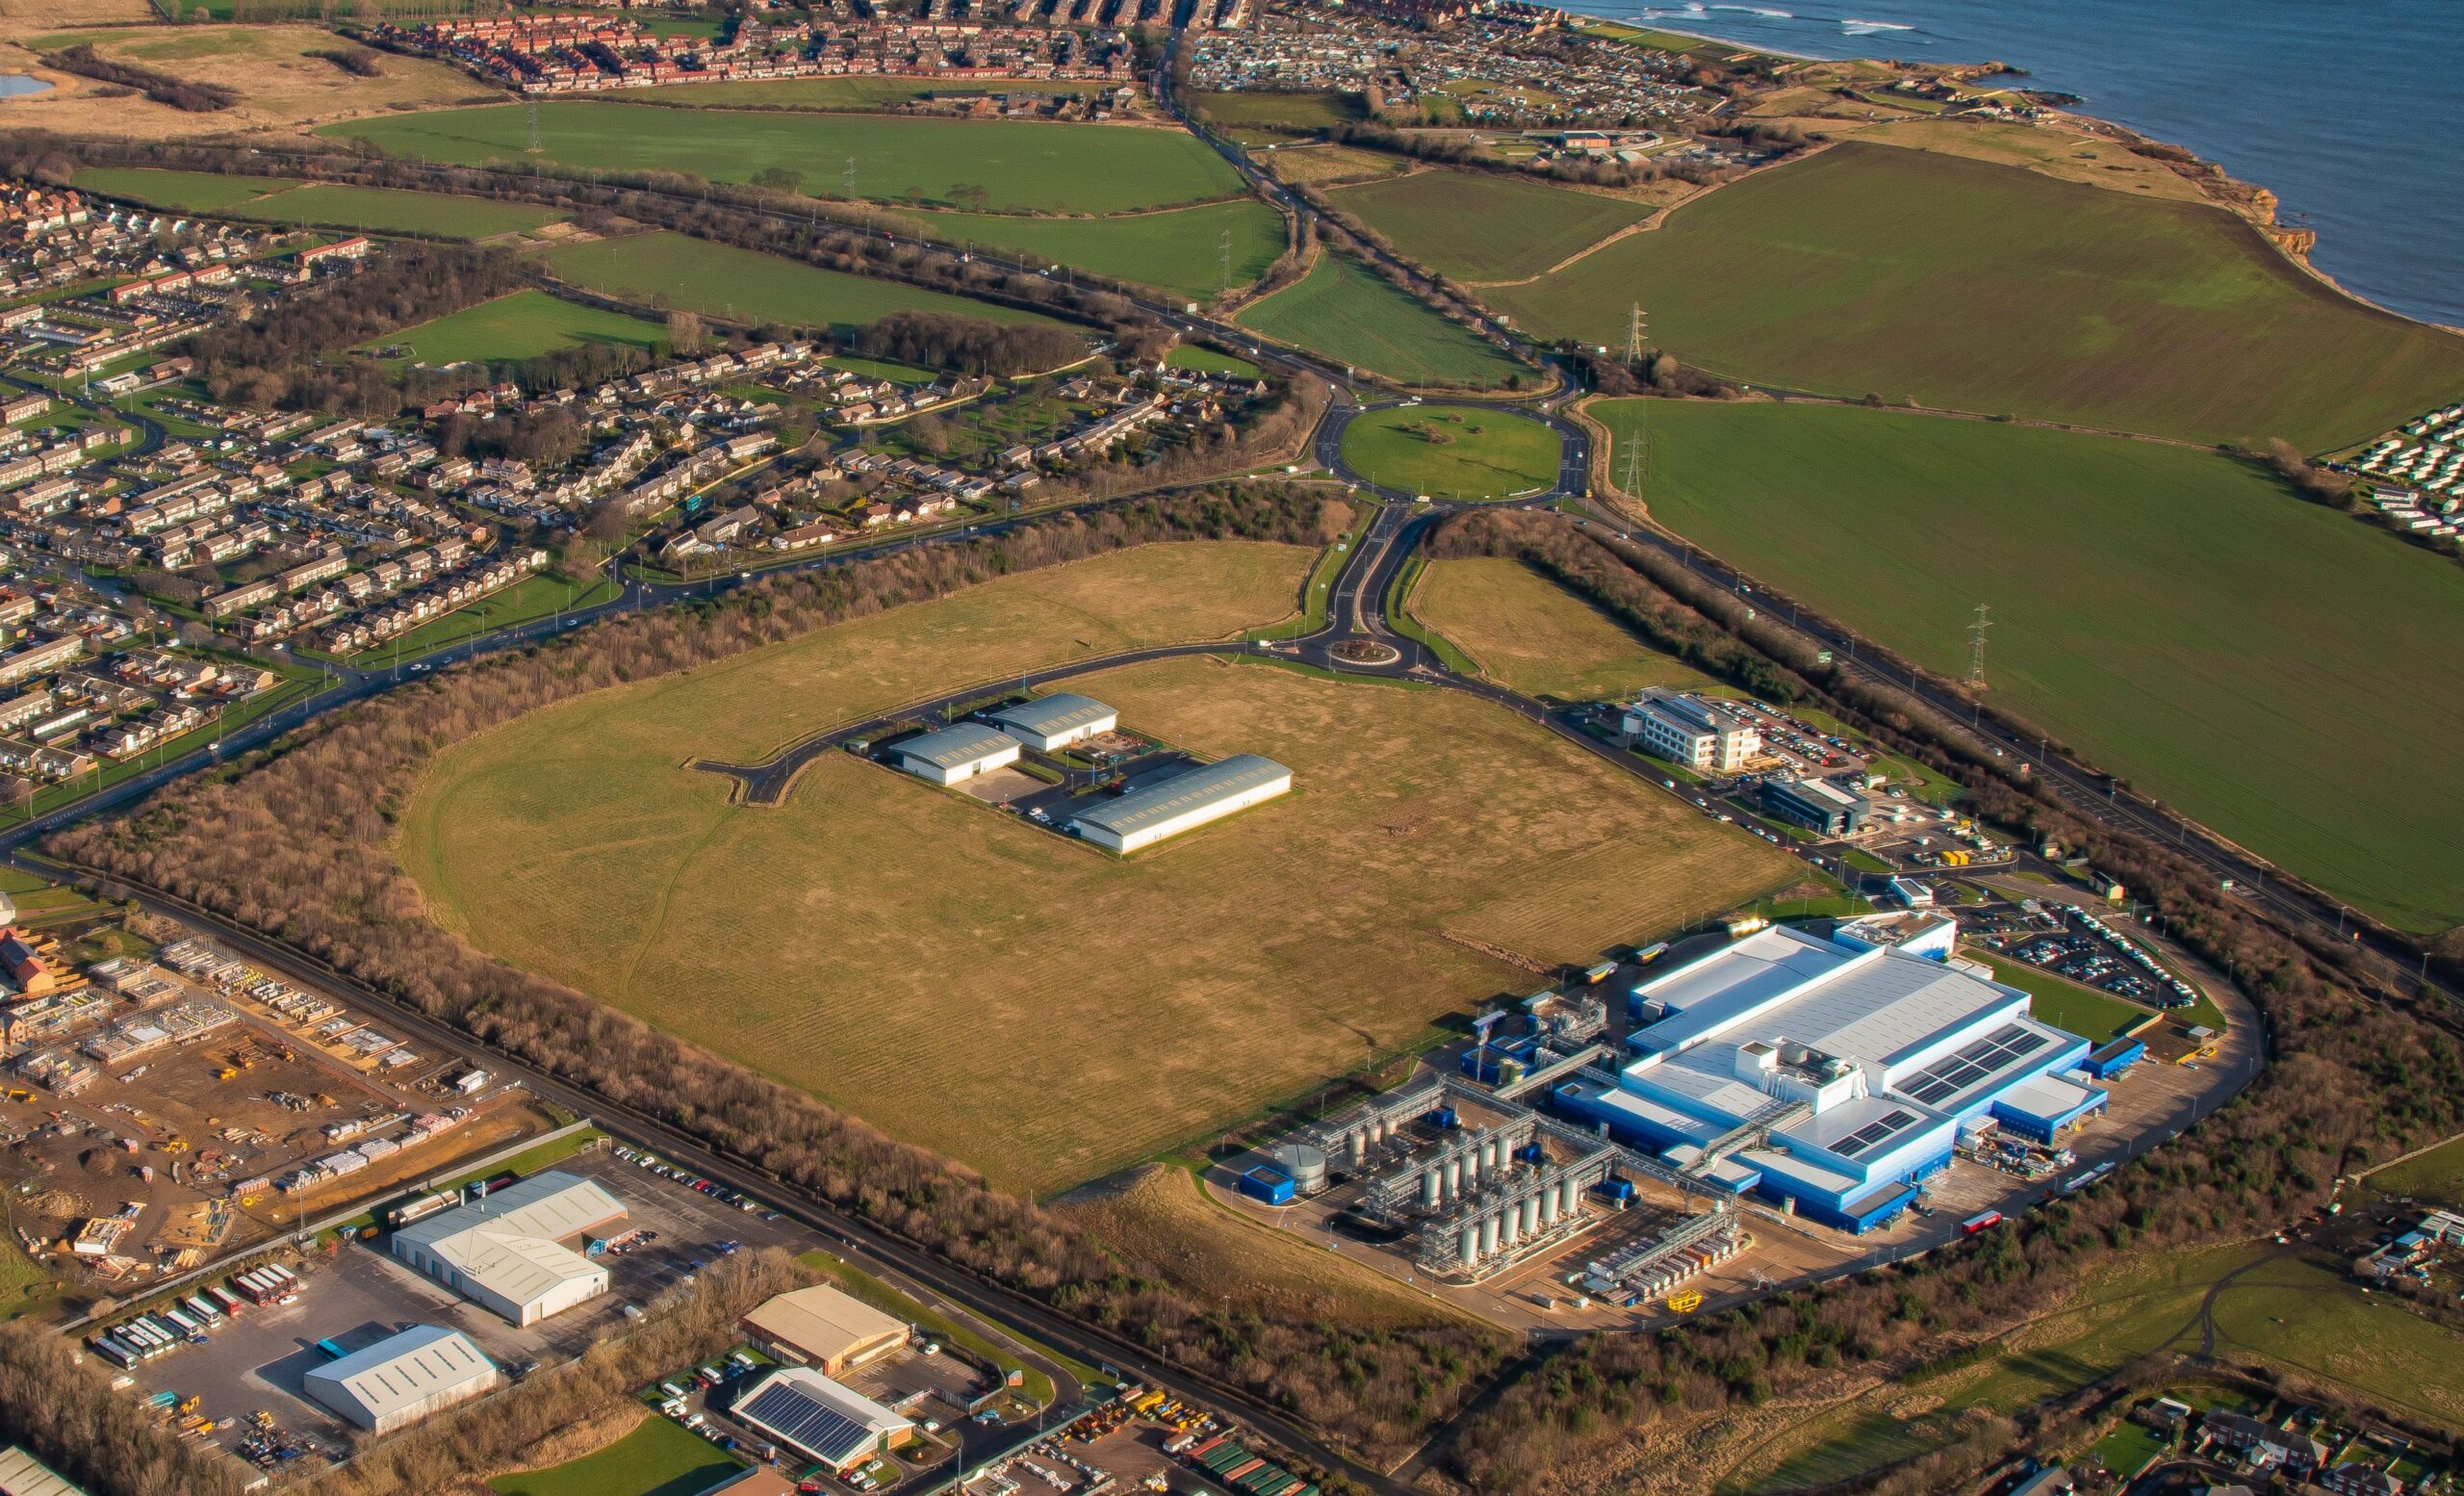 New visual showcase highlights business park's strengths to investors